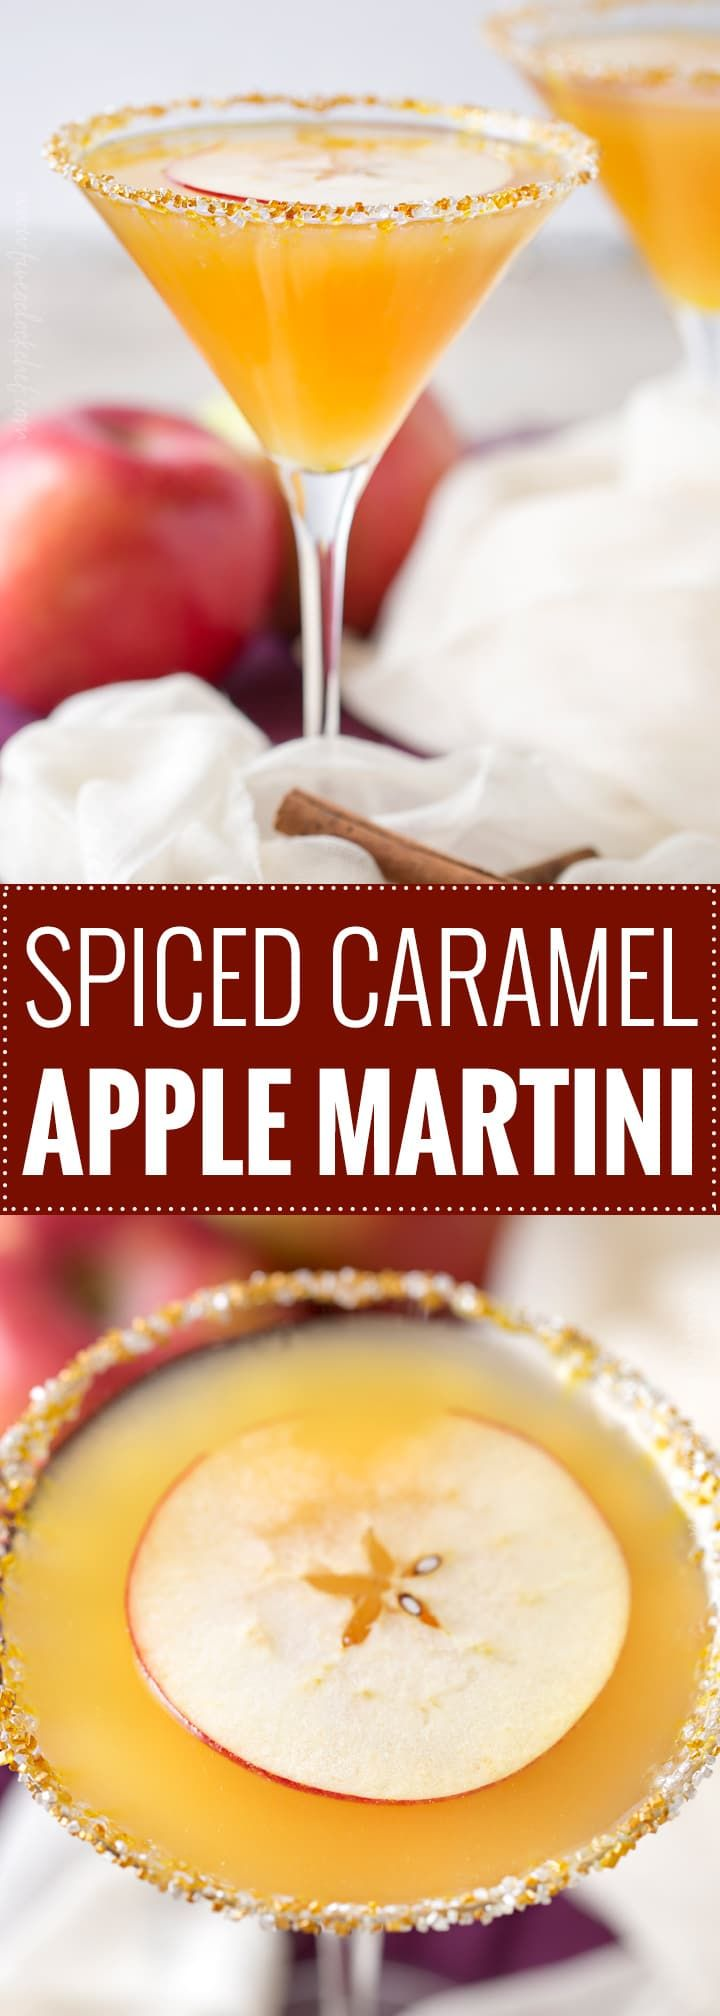 Spiced Caramel Apple Martini | Sweet spiced apple cider mixed with caramel flavored vodka, shaken over ice and served with a slice of sweet apple as a garnish! | https://the5oclockchef.com | #martinirecipe #applemartini #vodka #applecider #falldrink